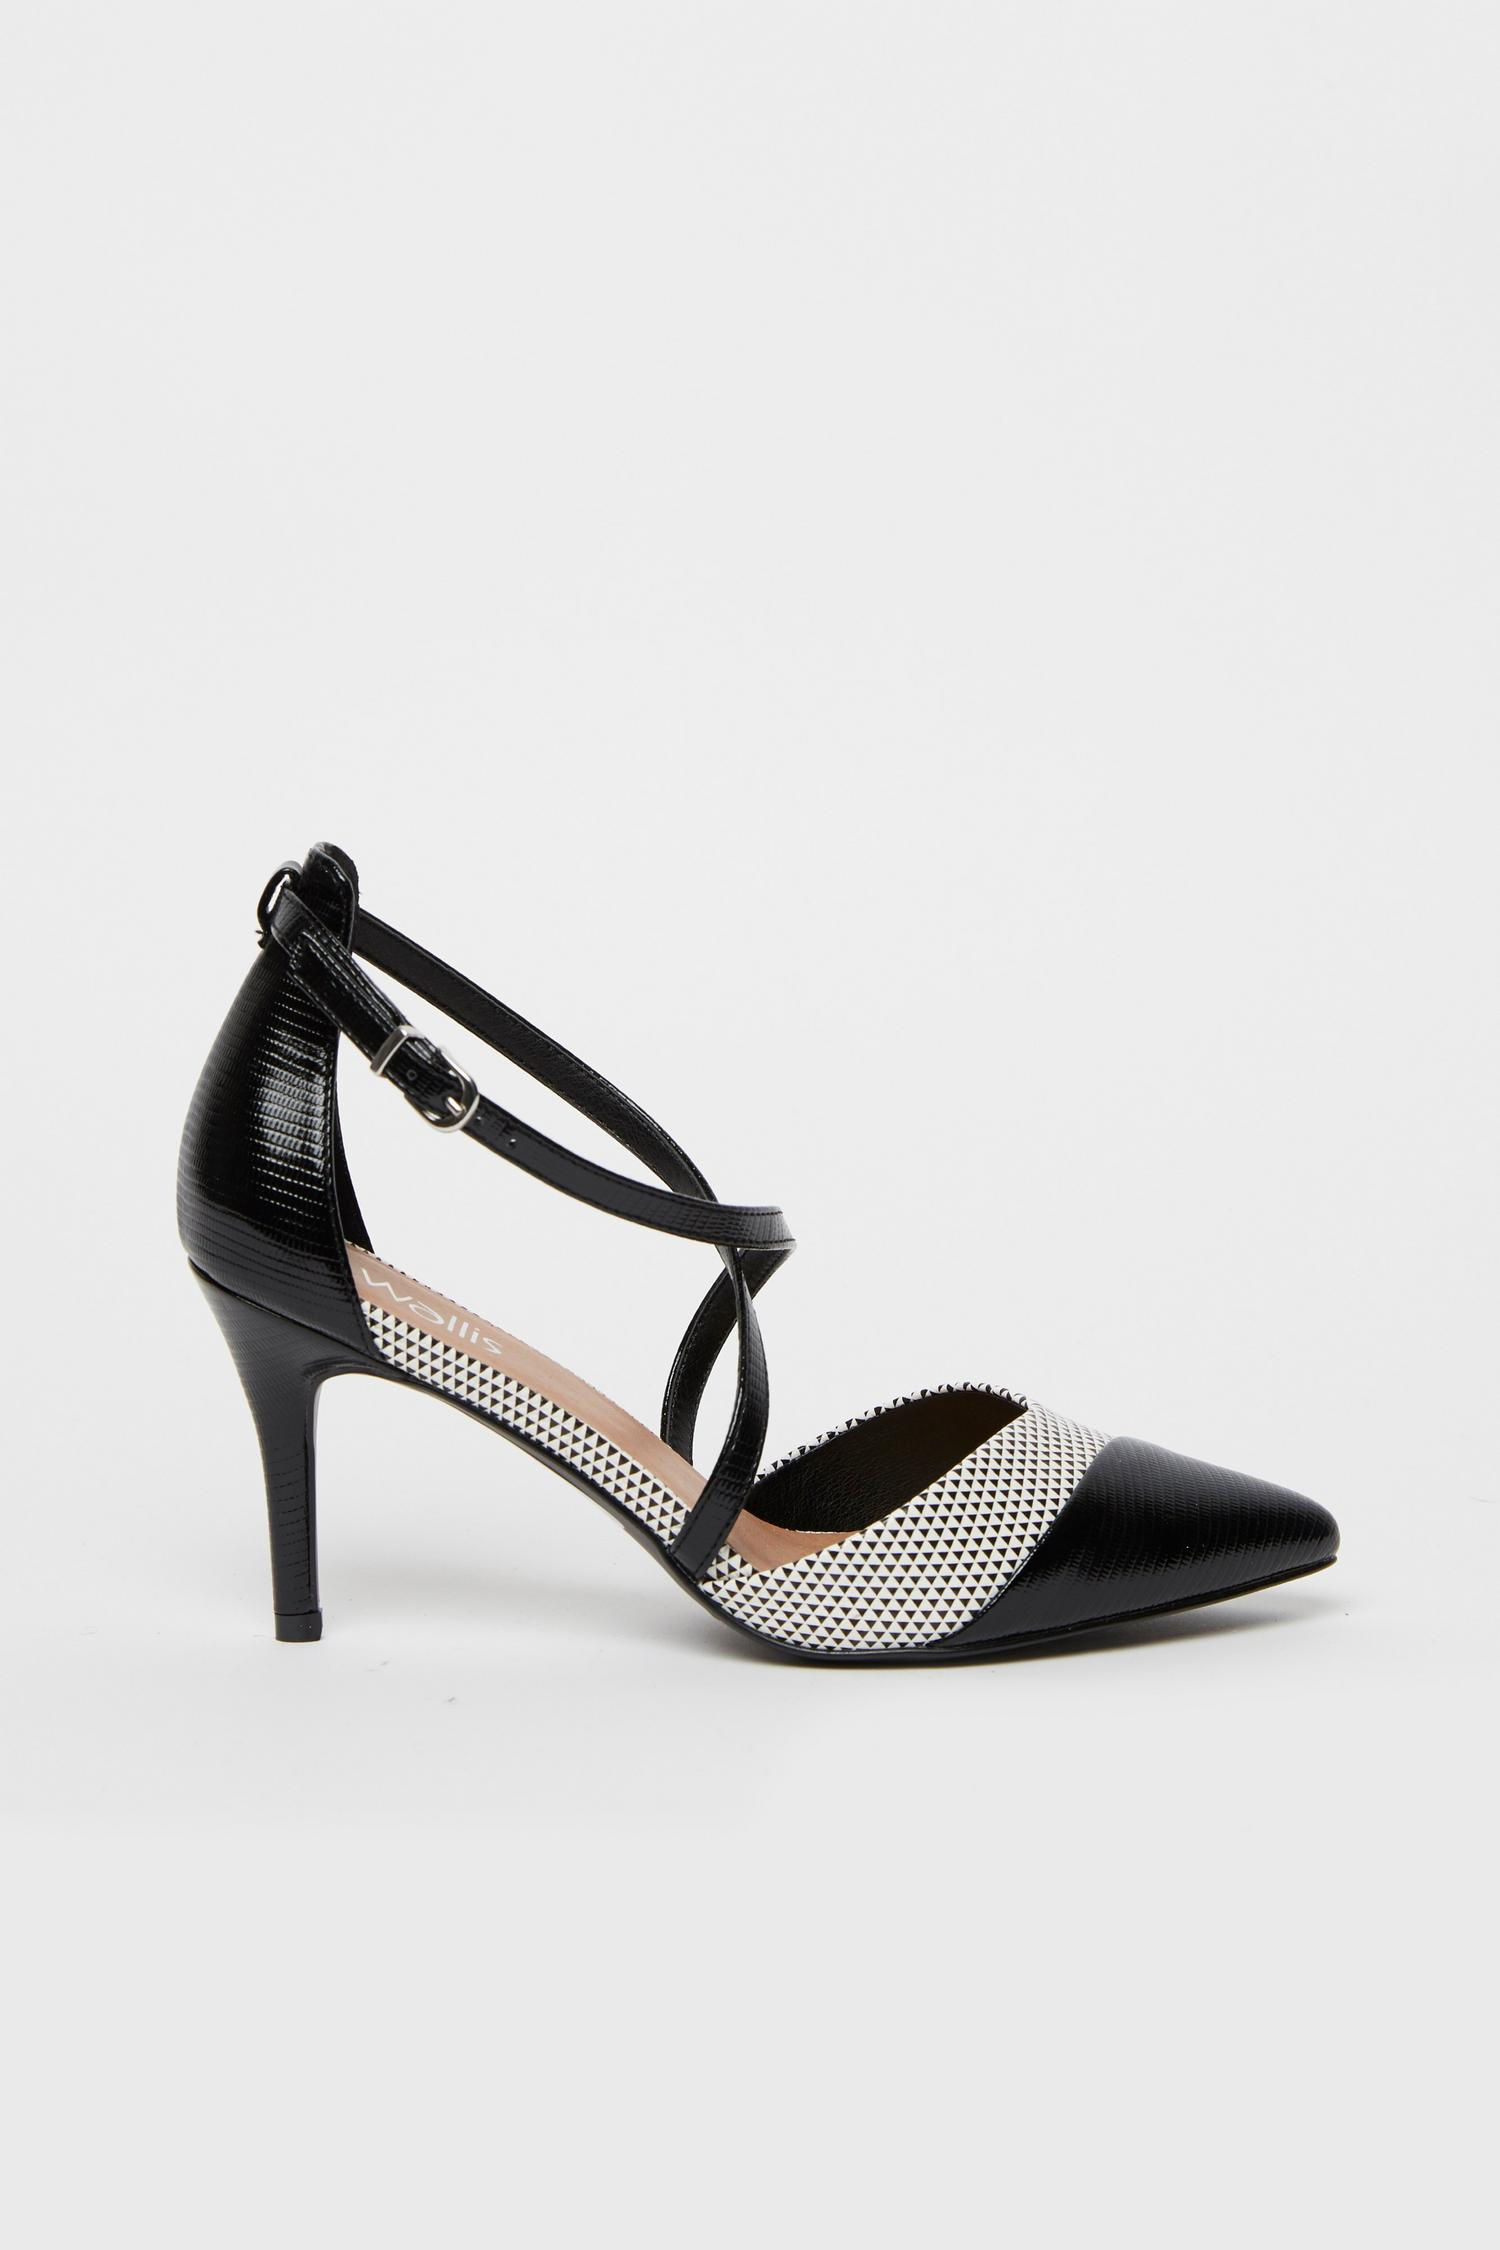 585 Monochrome Cross Strap Heels image number 2